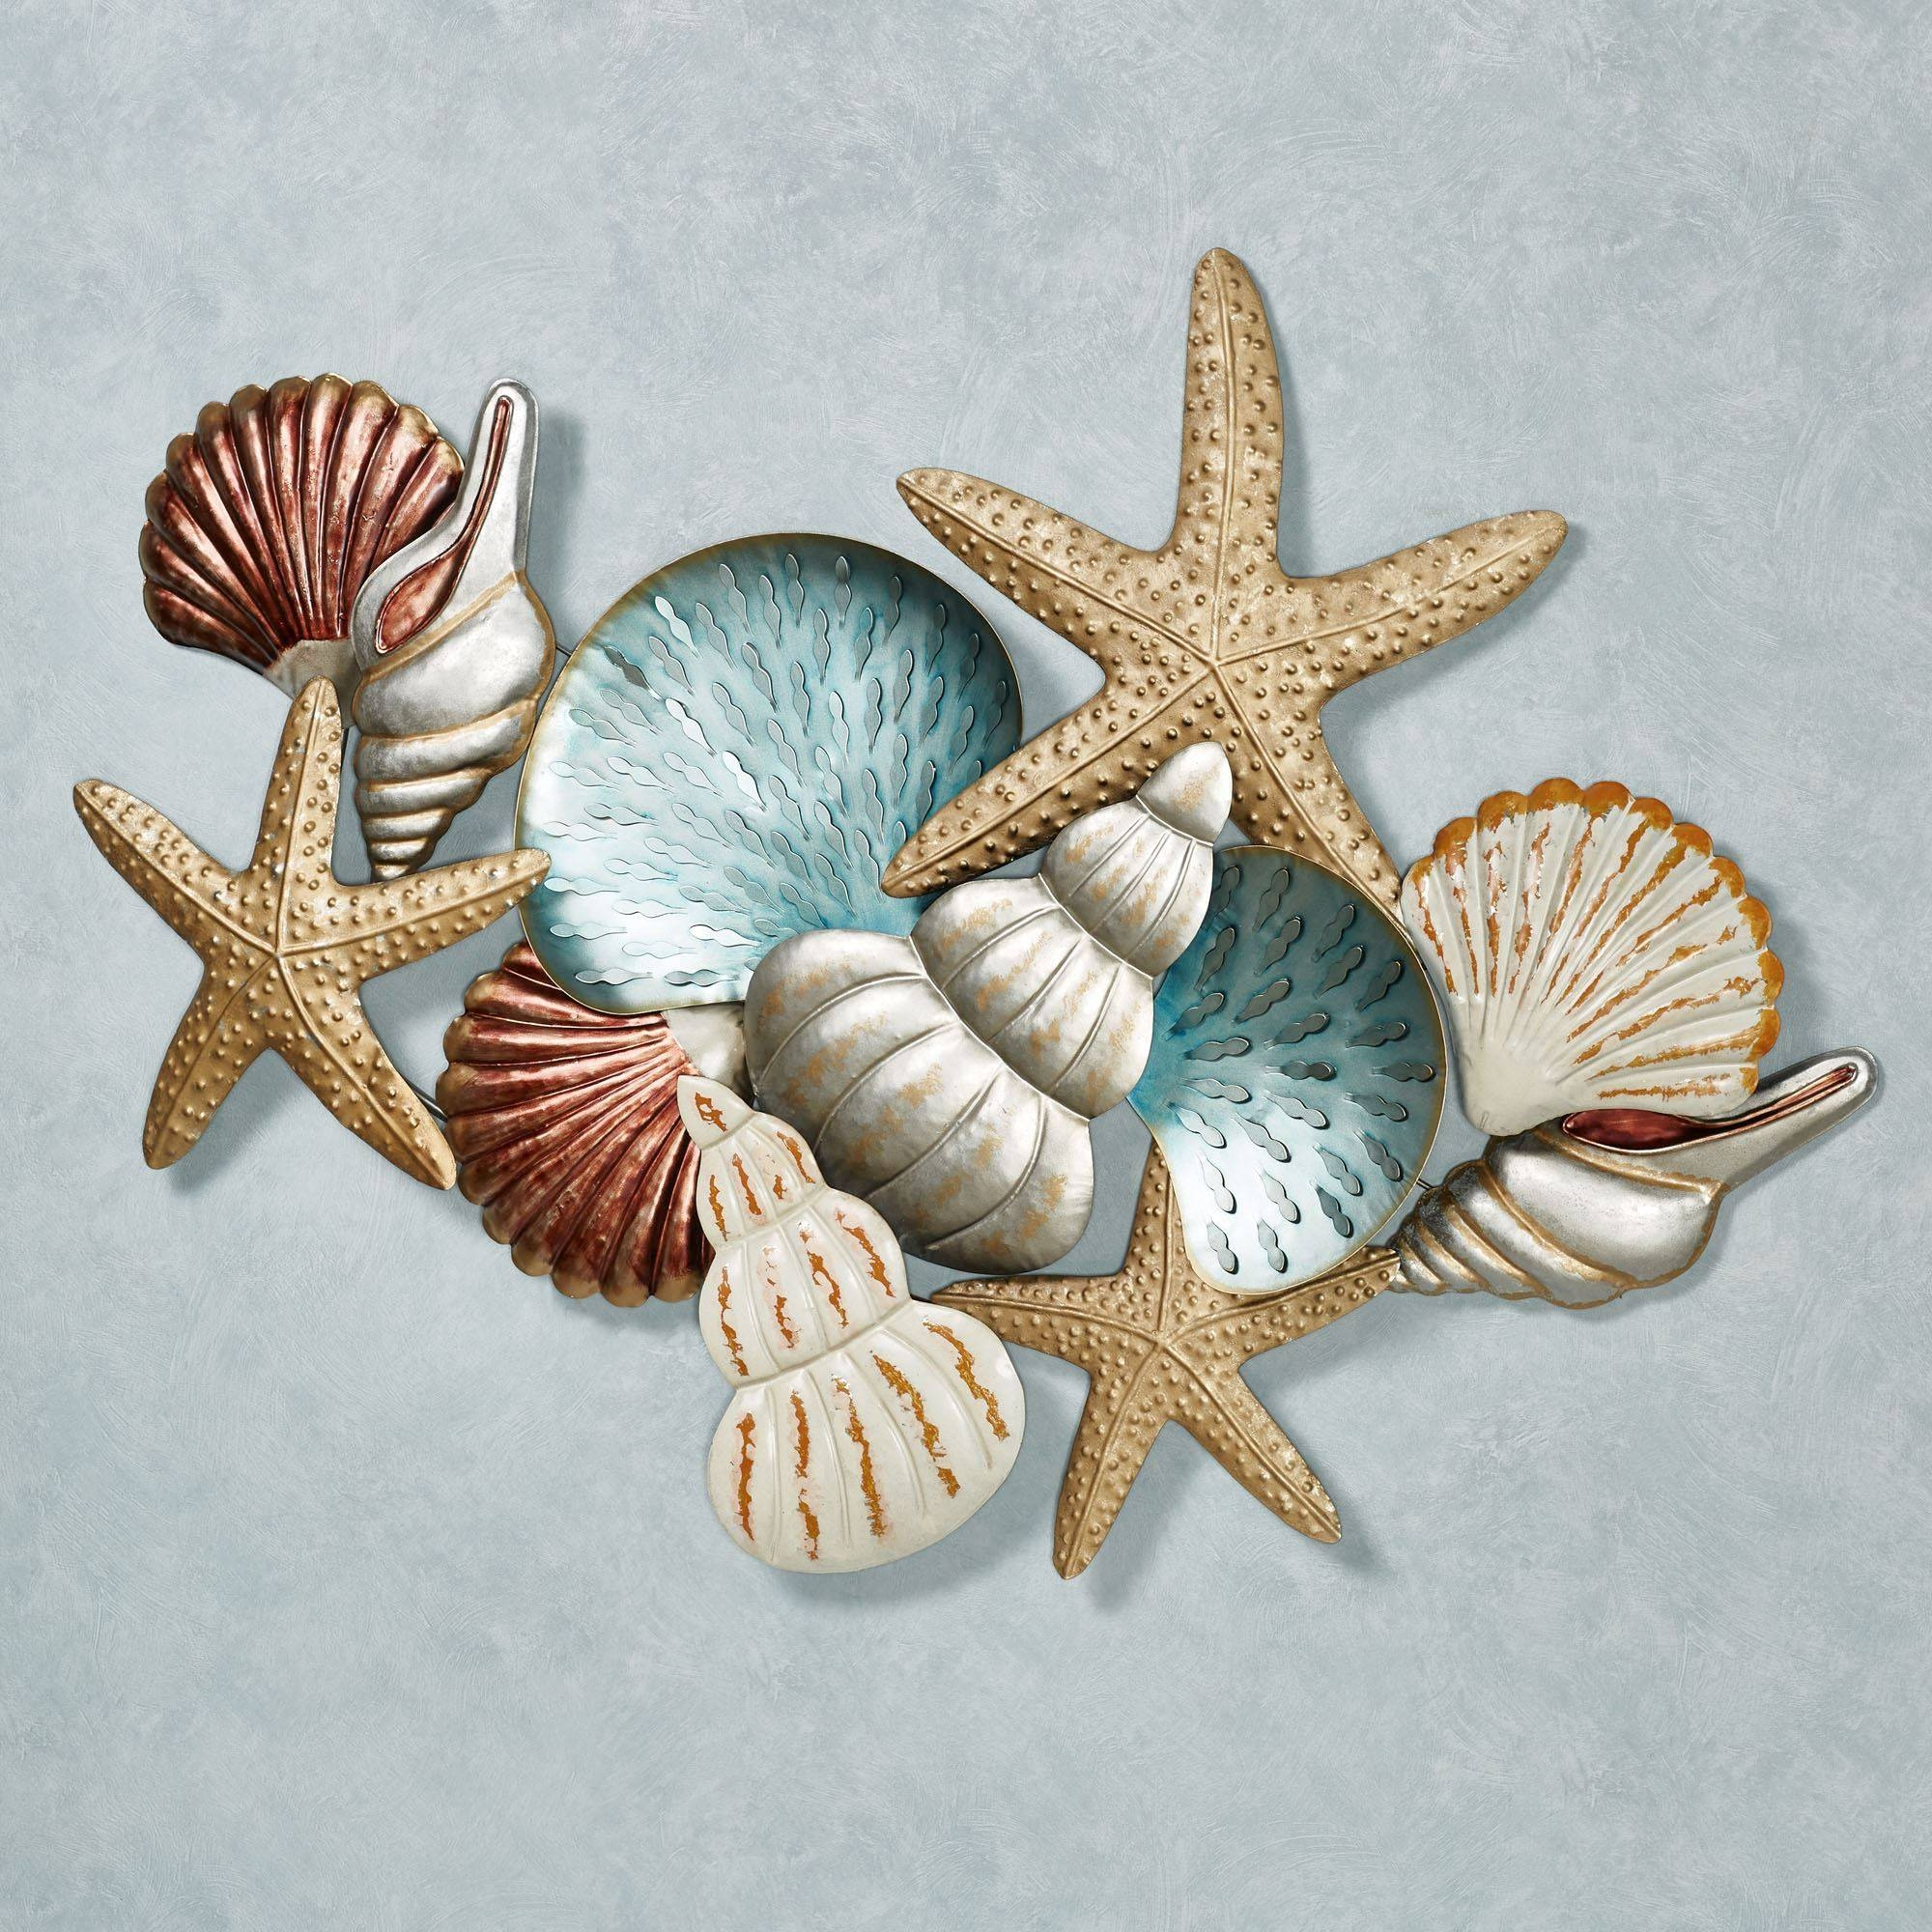 Ocean Collage Metal Wall Art Pertaining To Current Metal Coastal Wall Art (View 12 of 20)